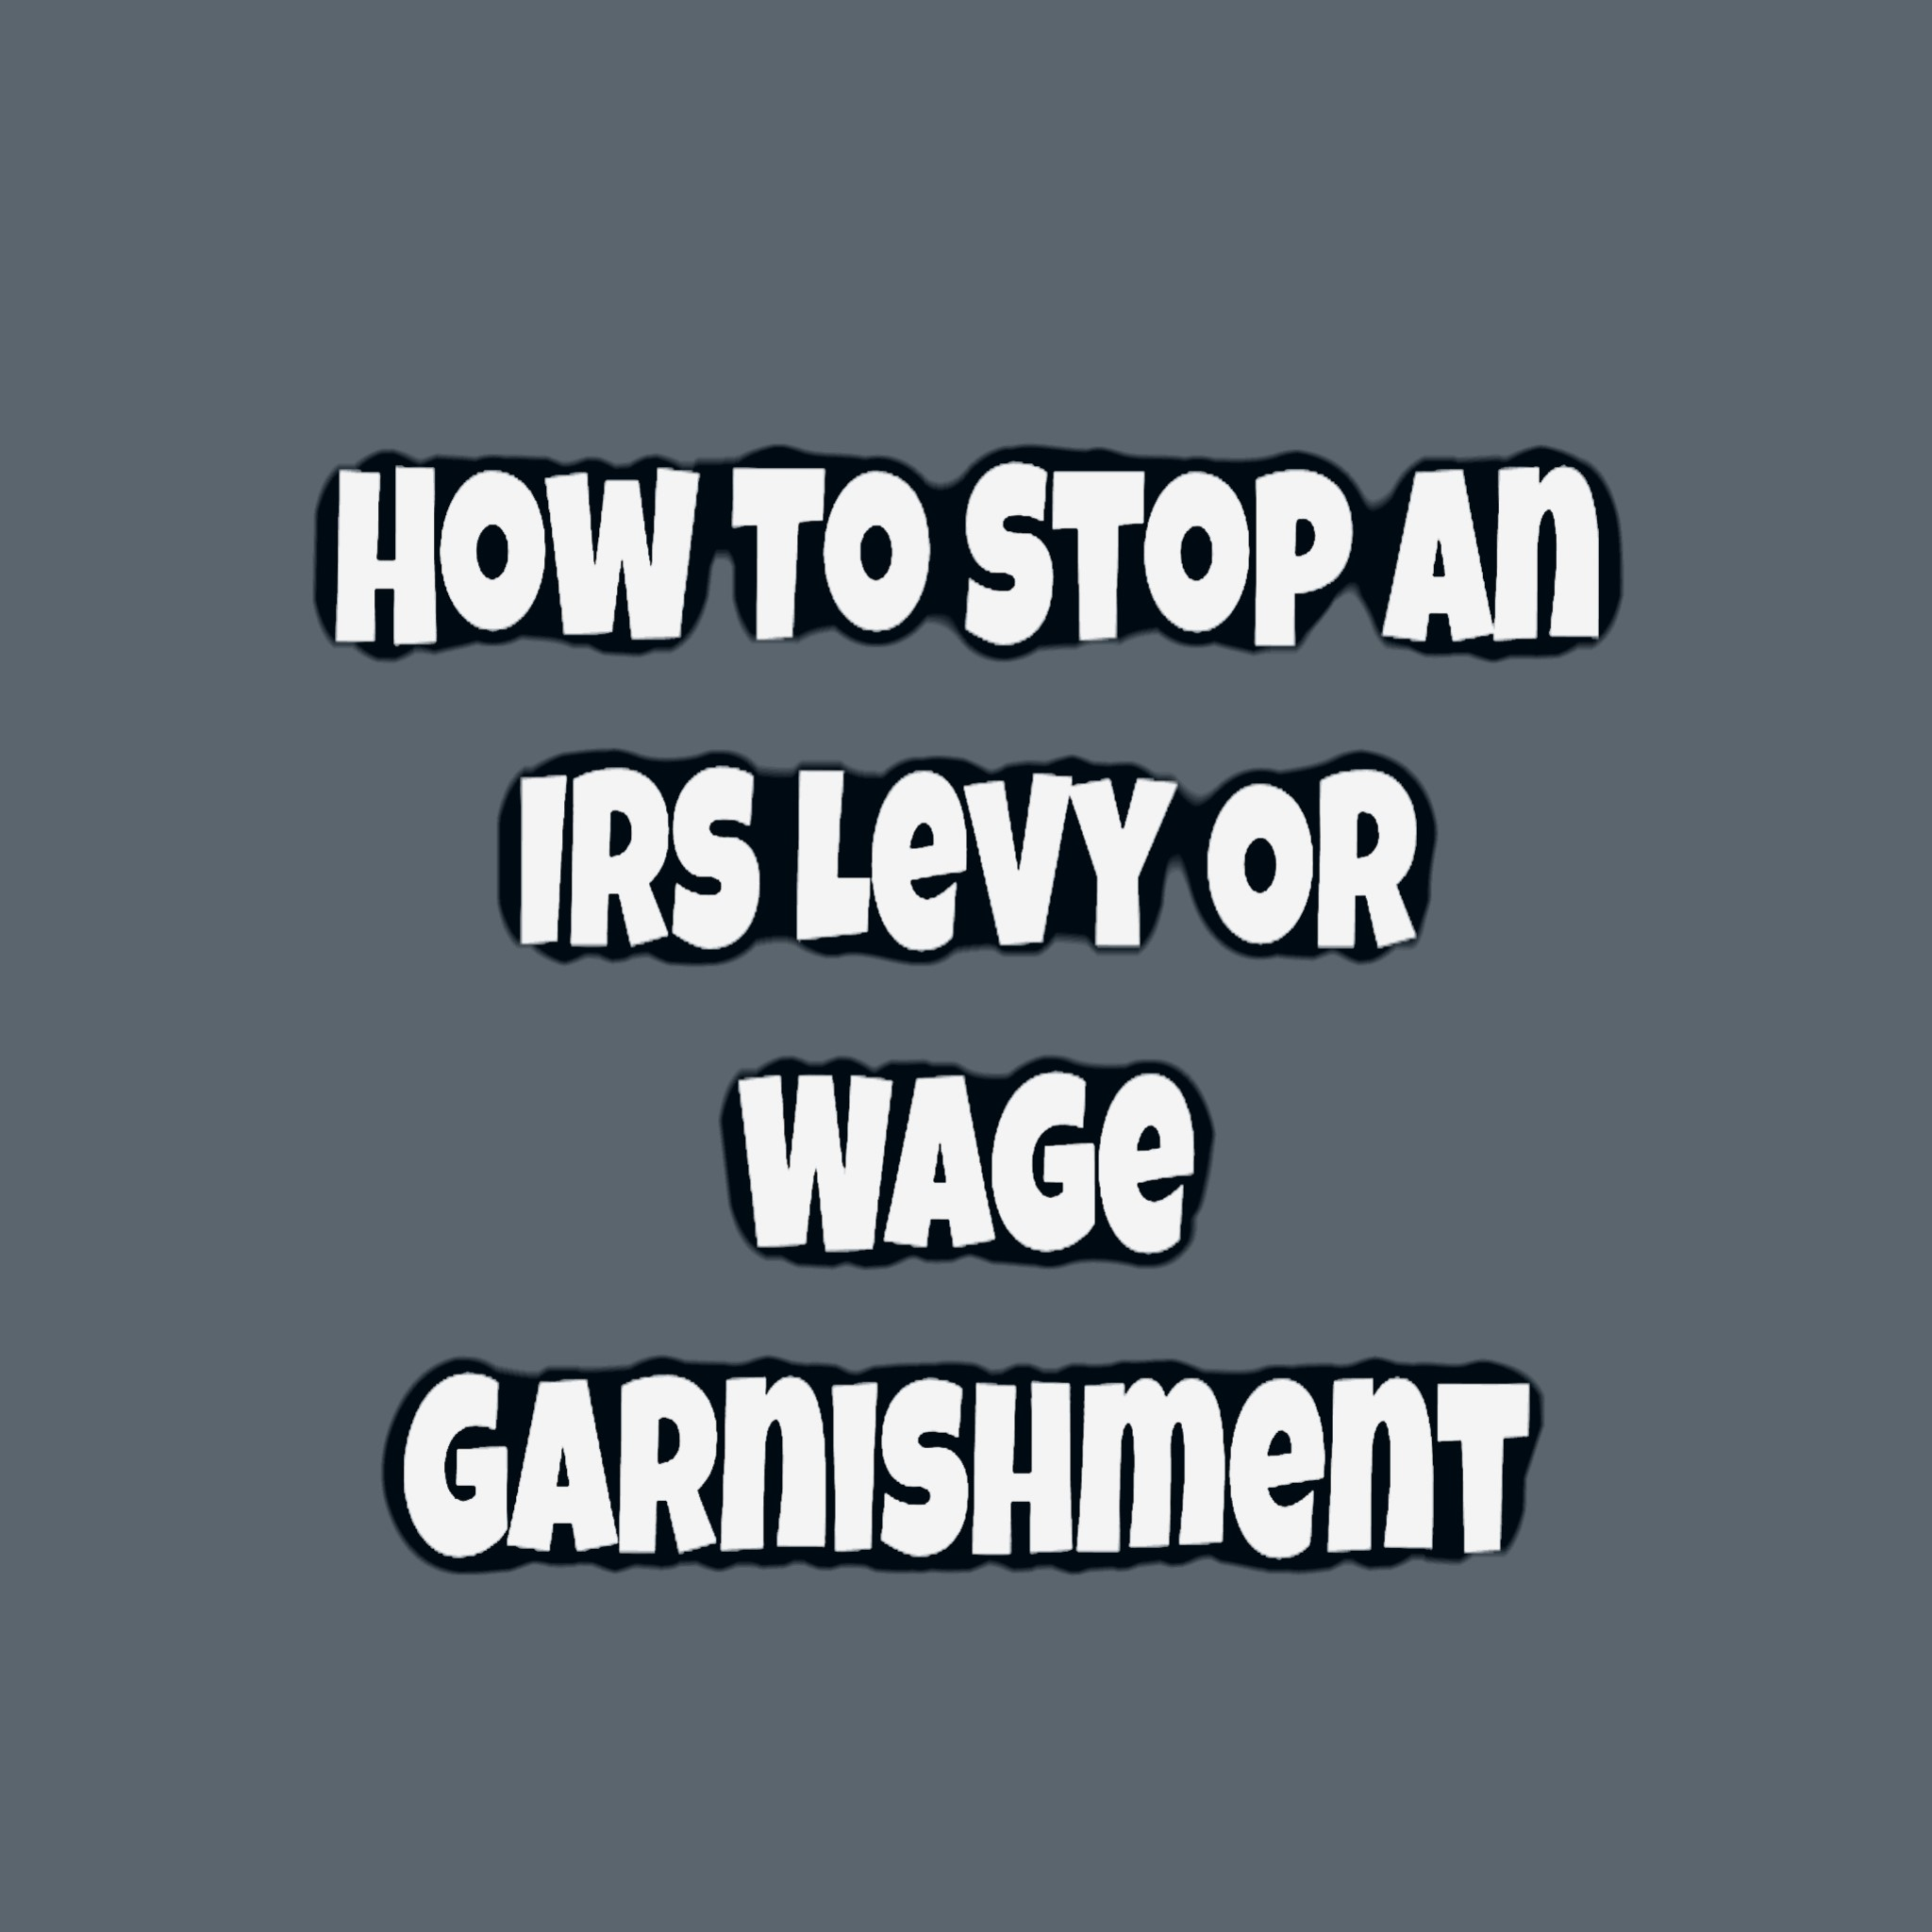 IRS TAx Levy; IRS wage garnishment